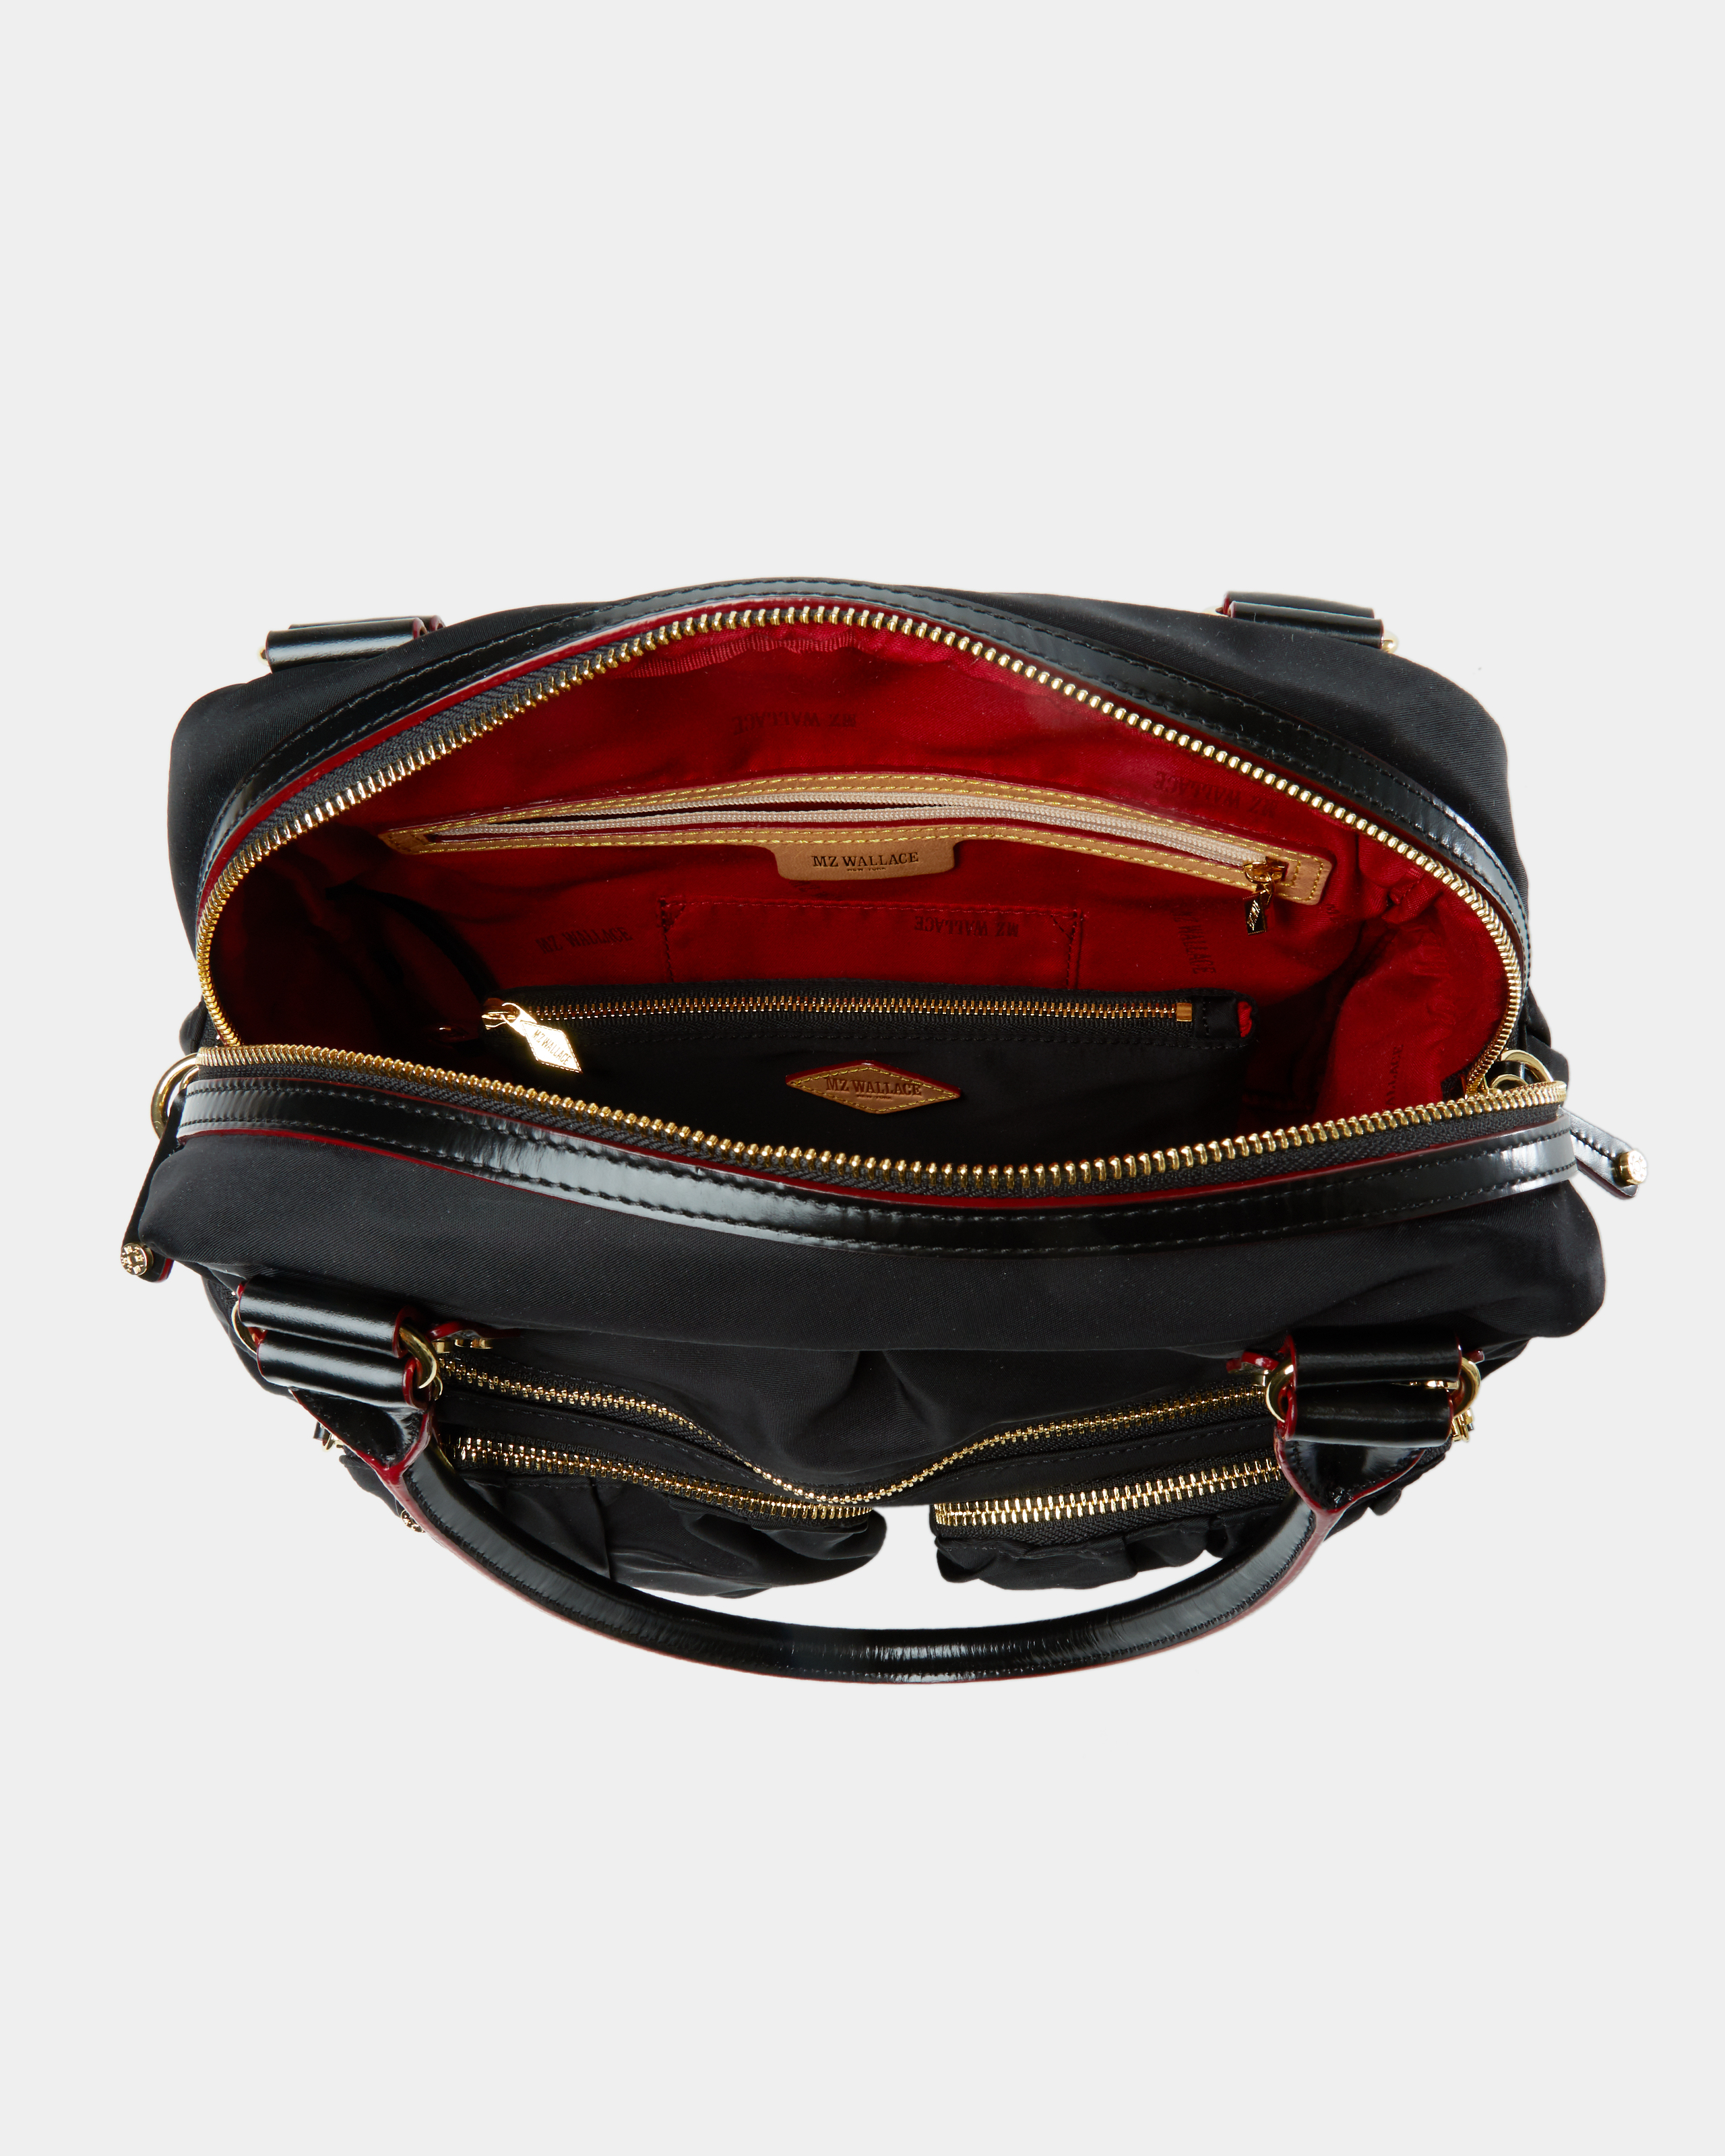 Frankie Travel Bag - Black Bedford (3030089) in color Black